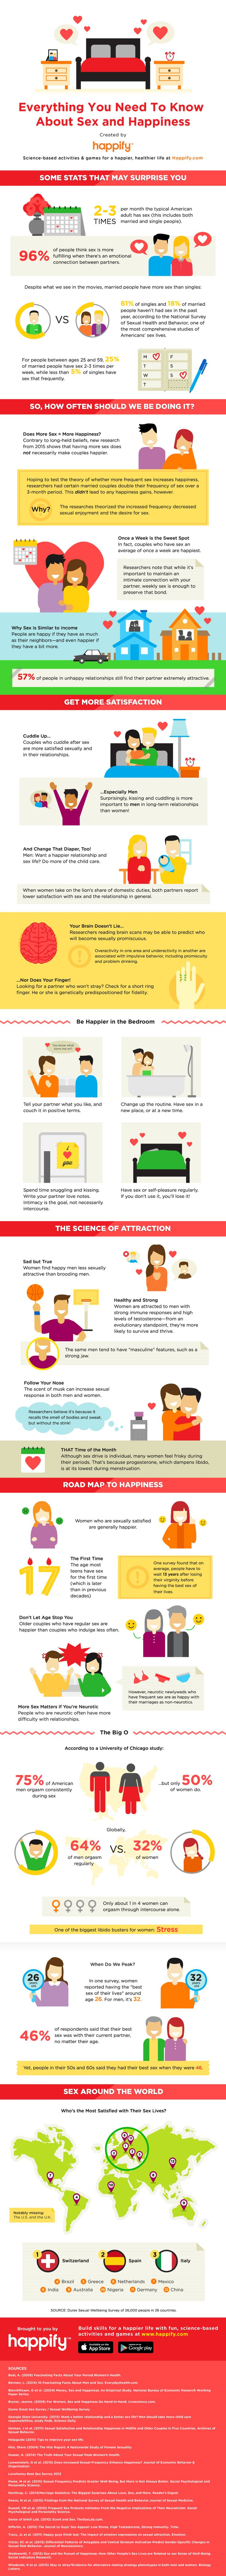 INFOGRAPHIC: How Your Sex Life Affects Your Happiness